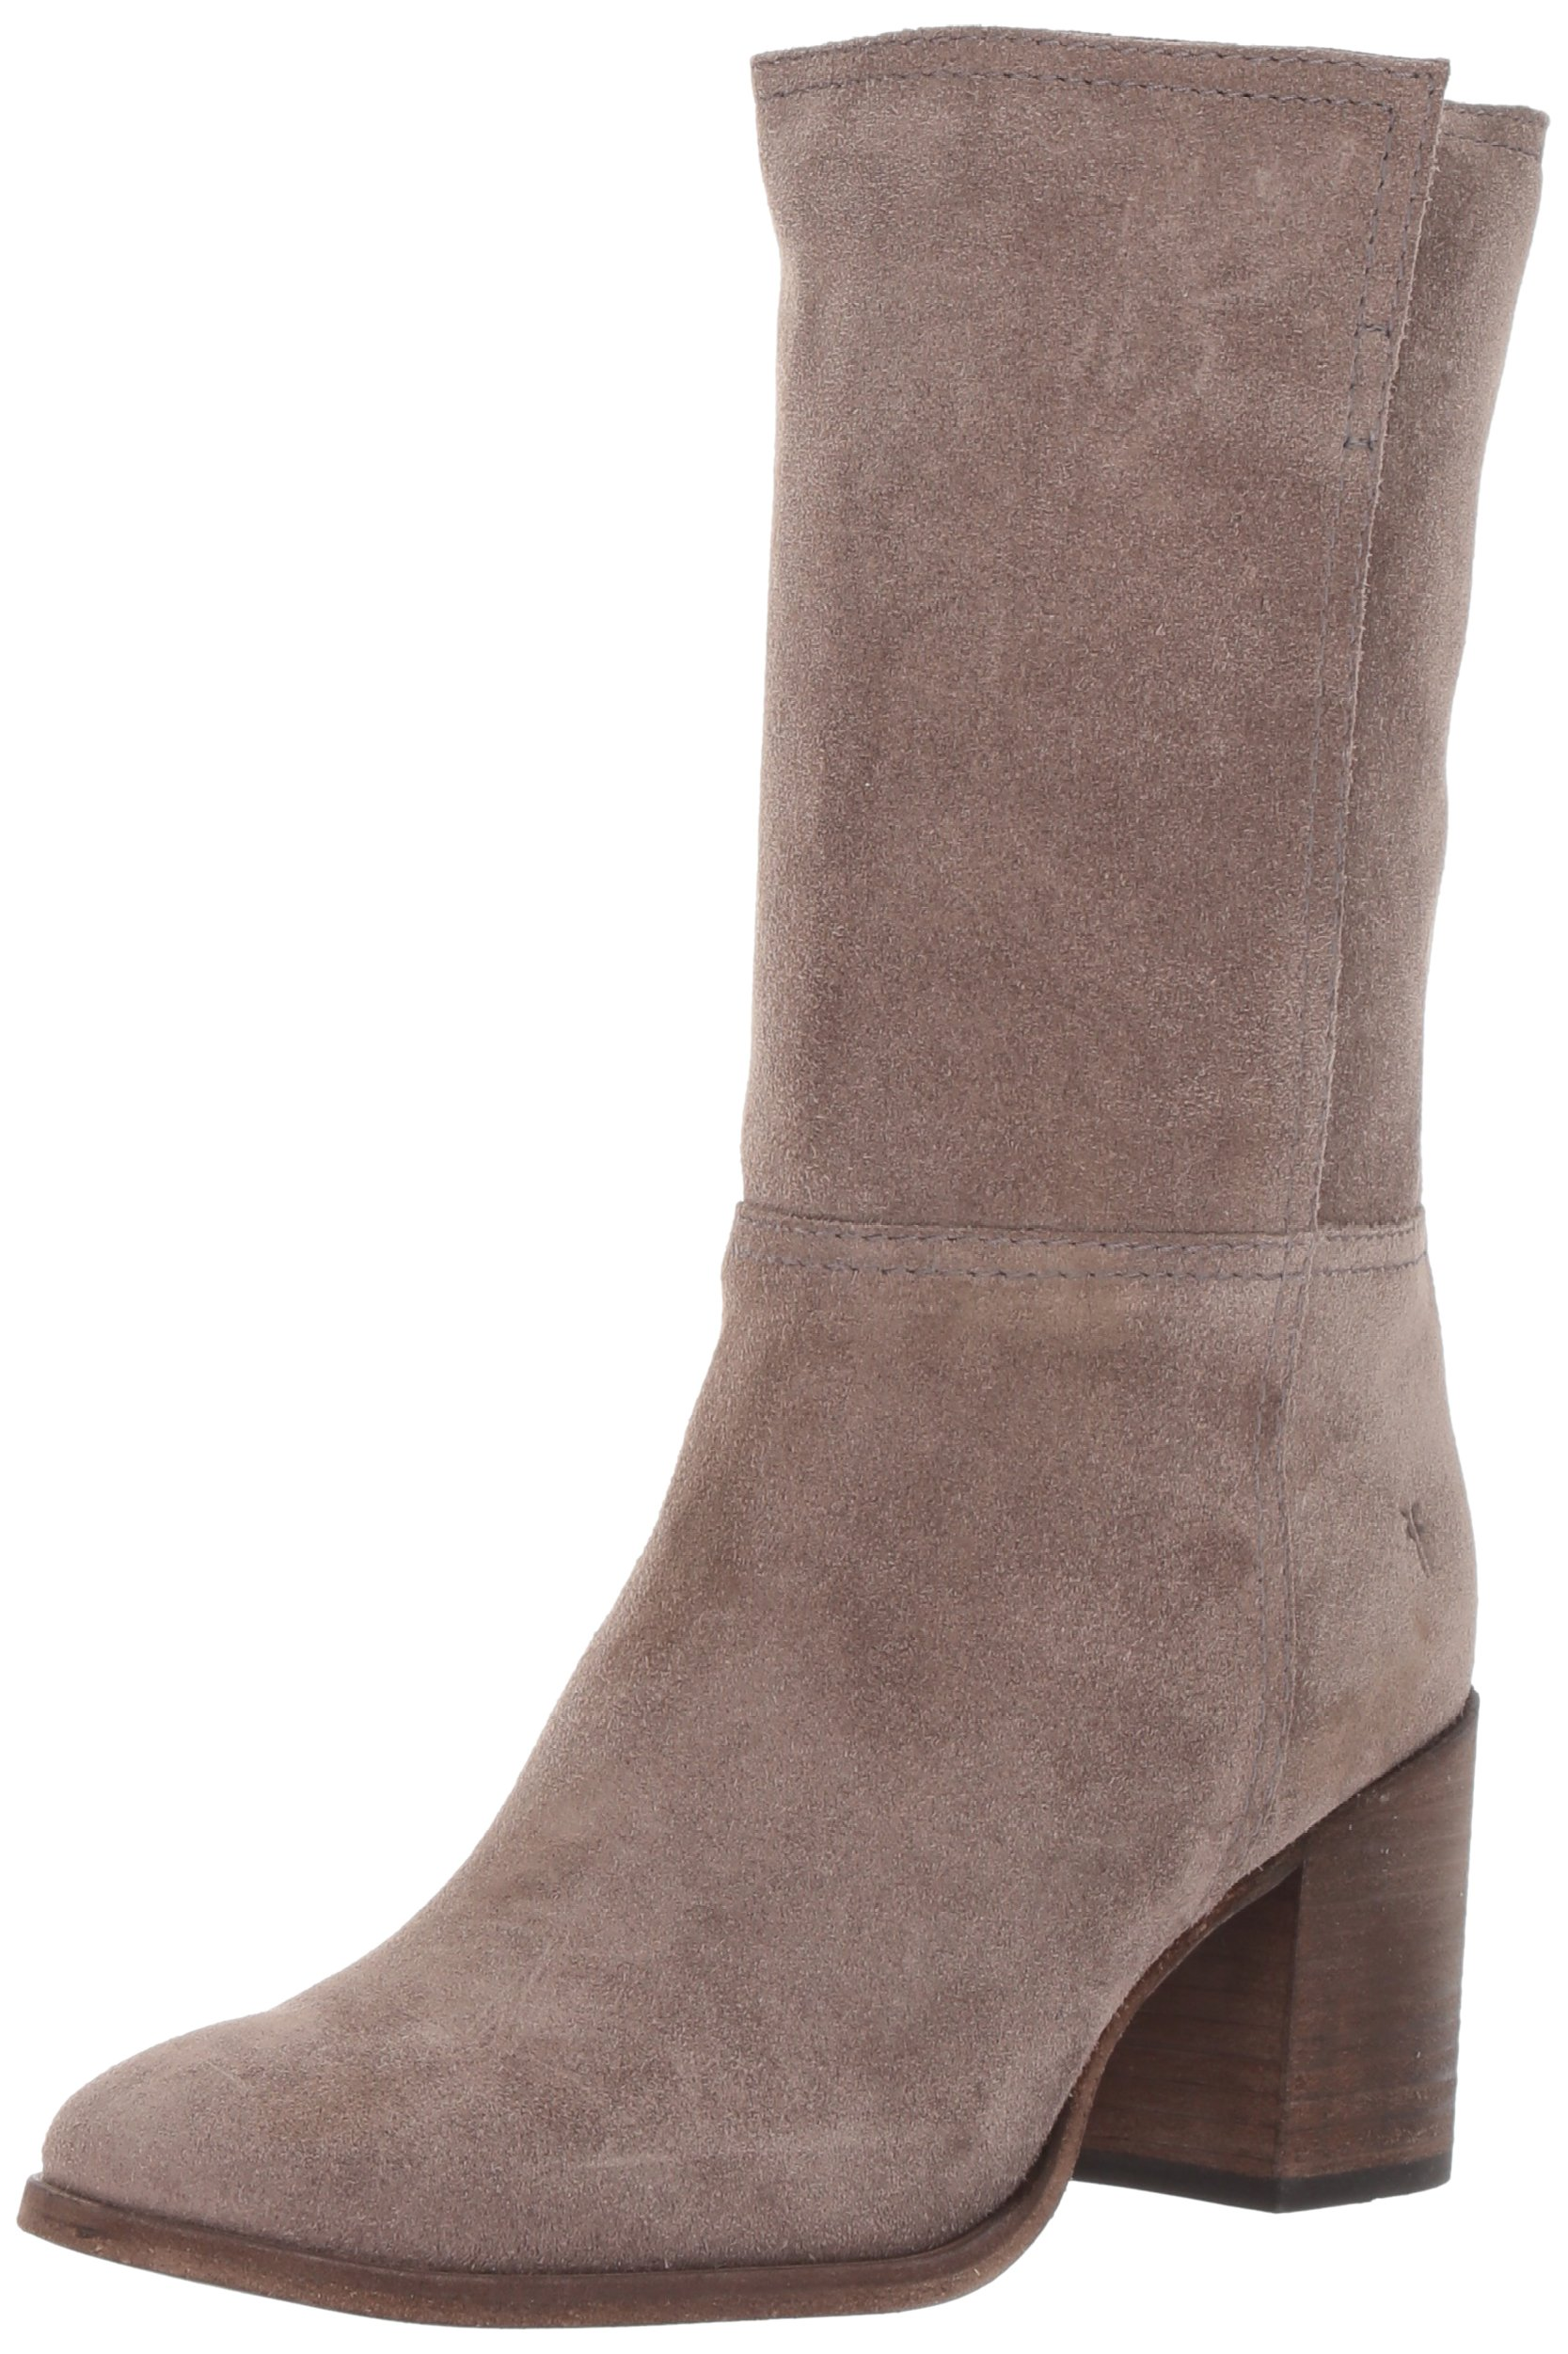 FRYE Women's Nora Mid Pull on Boot, Elephant Soft Oiled Suede, 11 M US